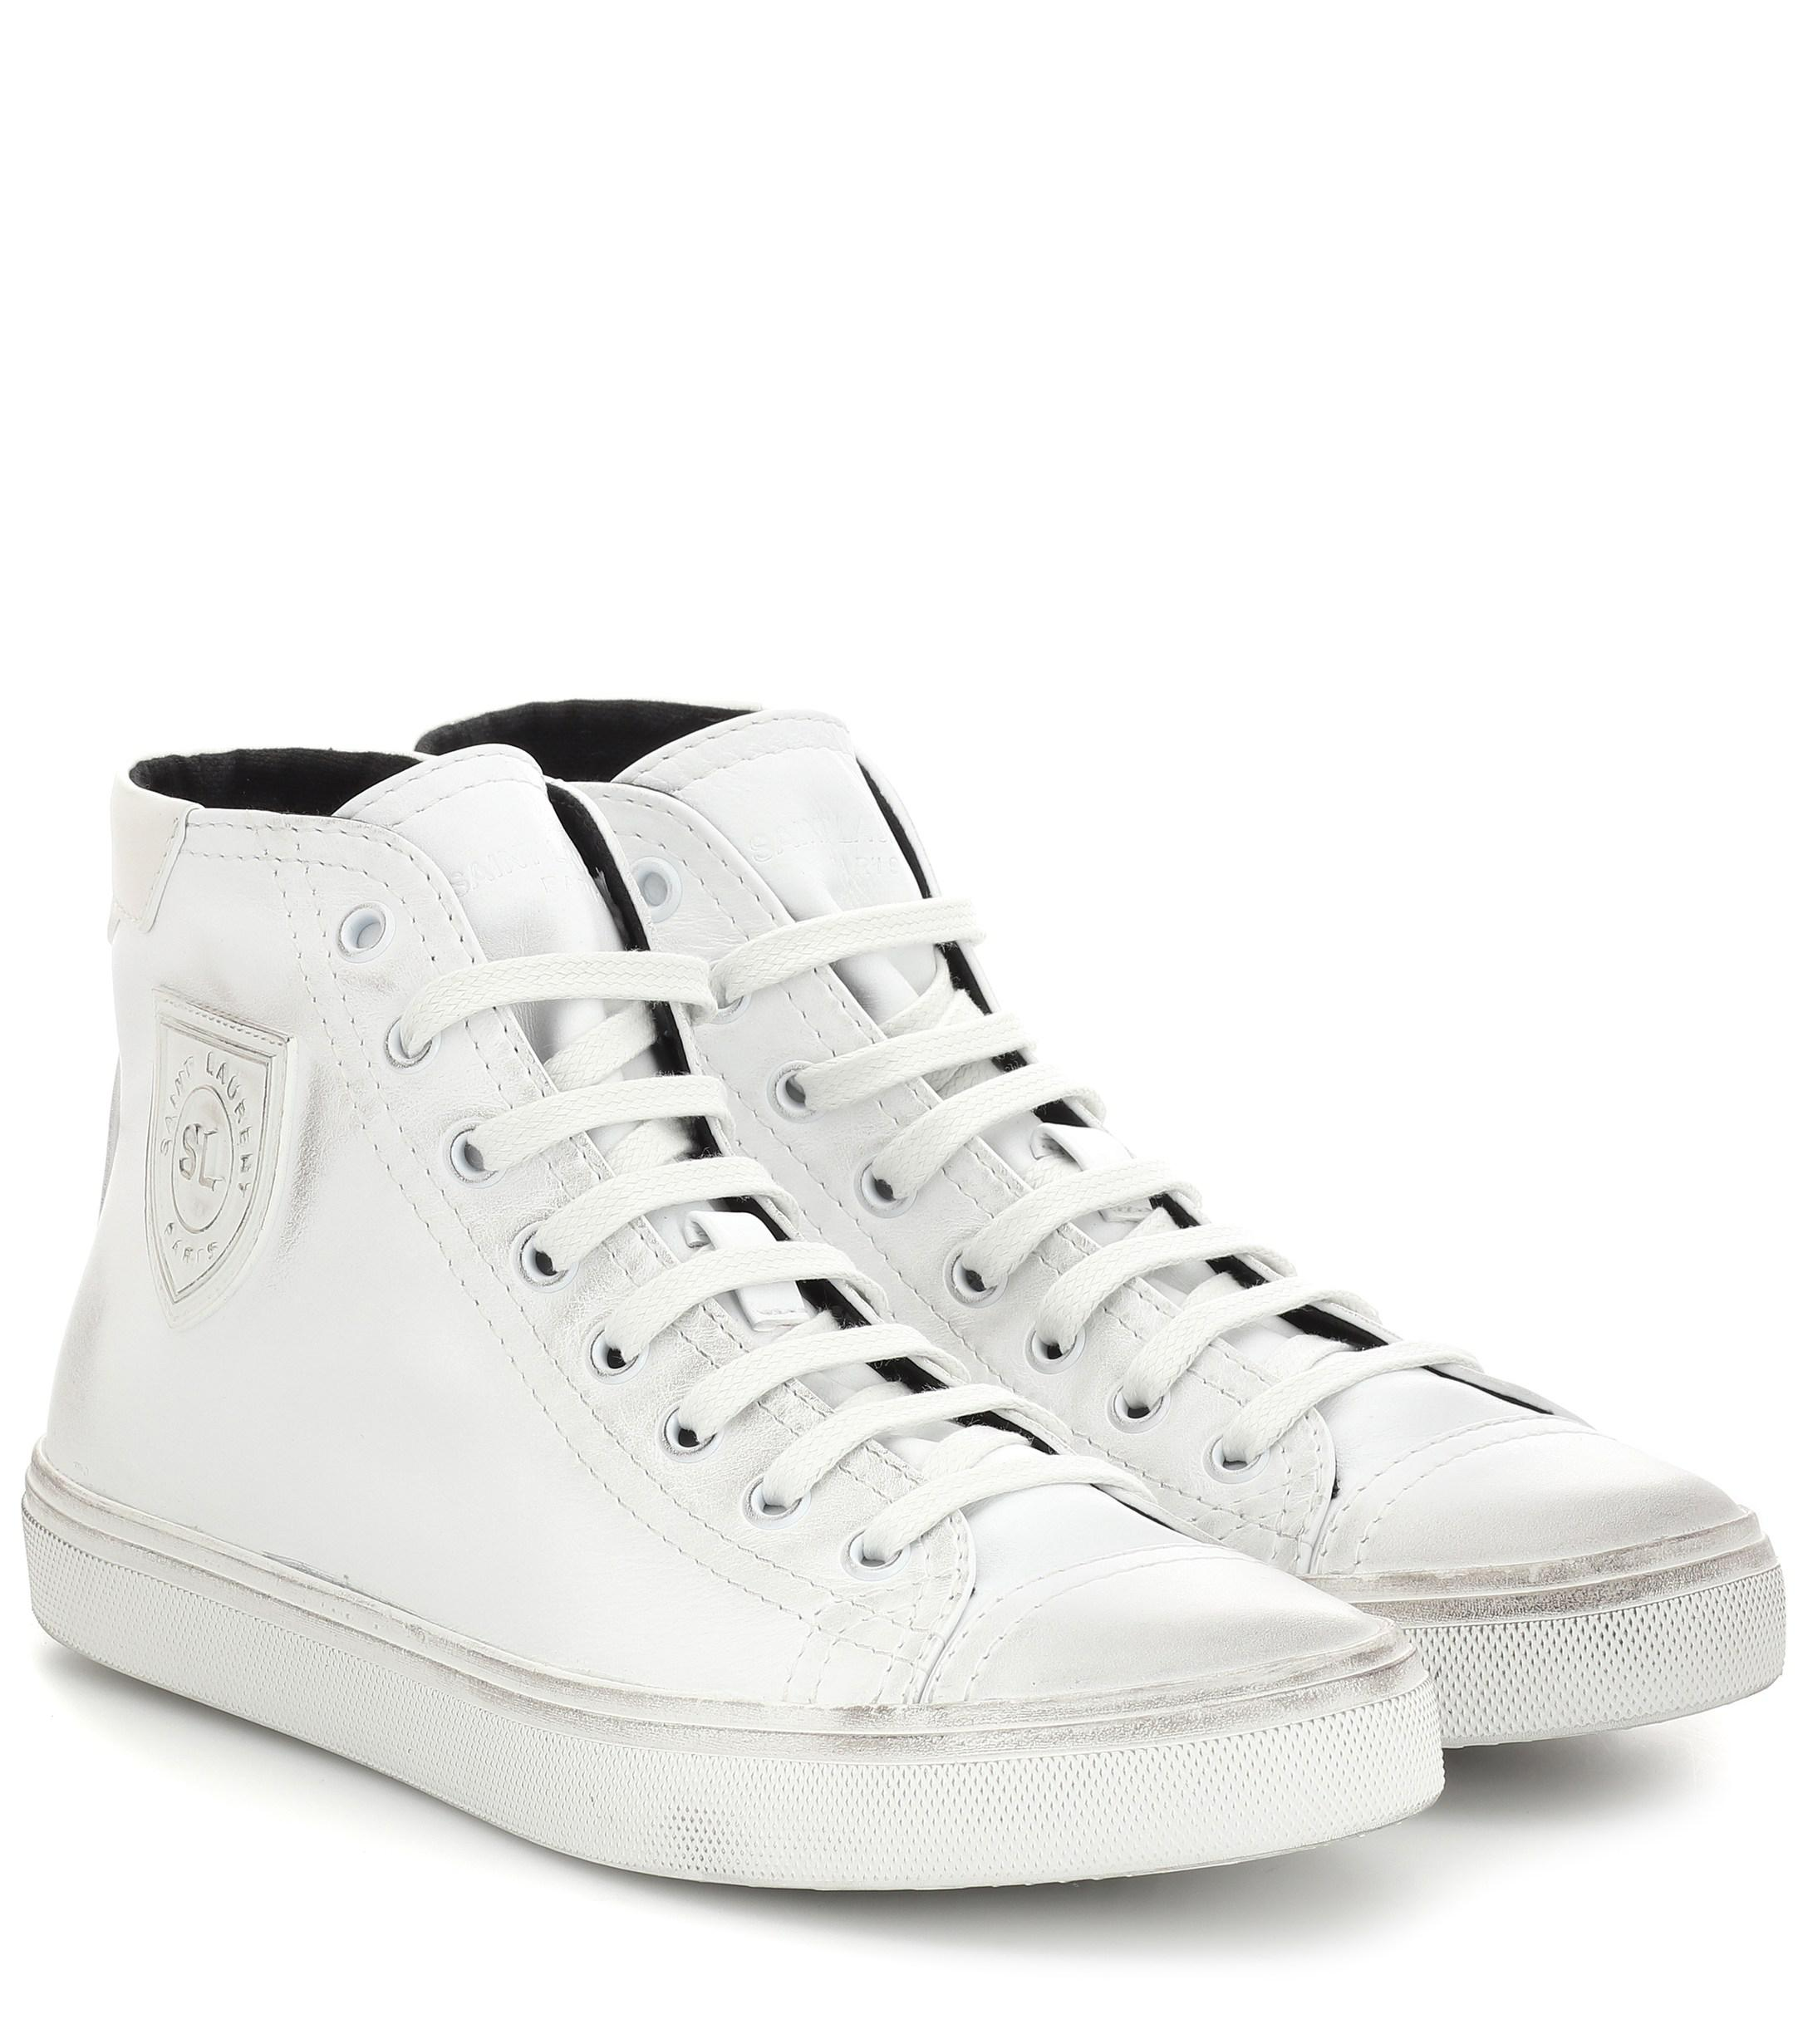 21004a70b752 Saint Laurent Bedford Leather High-top Sneakers in White - Lyst